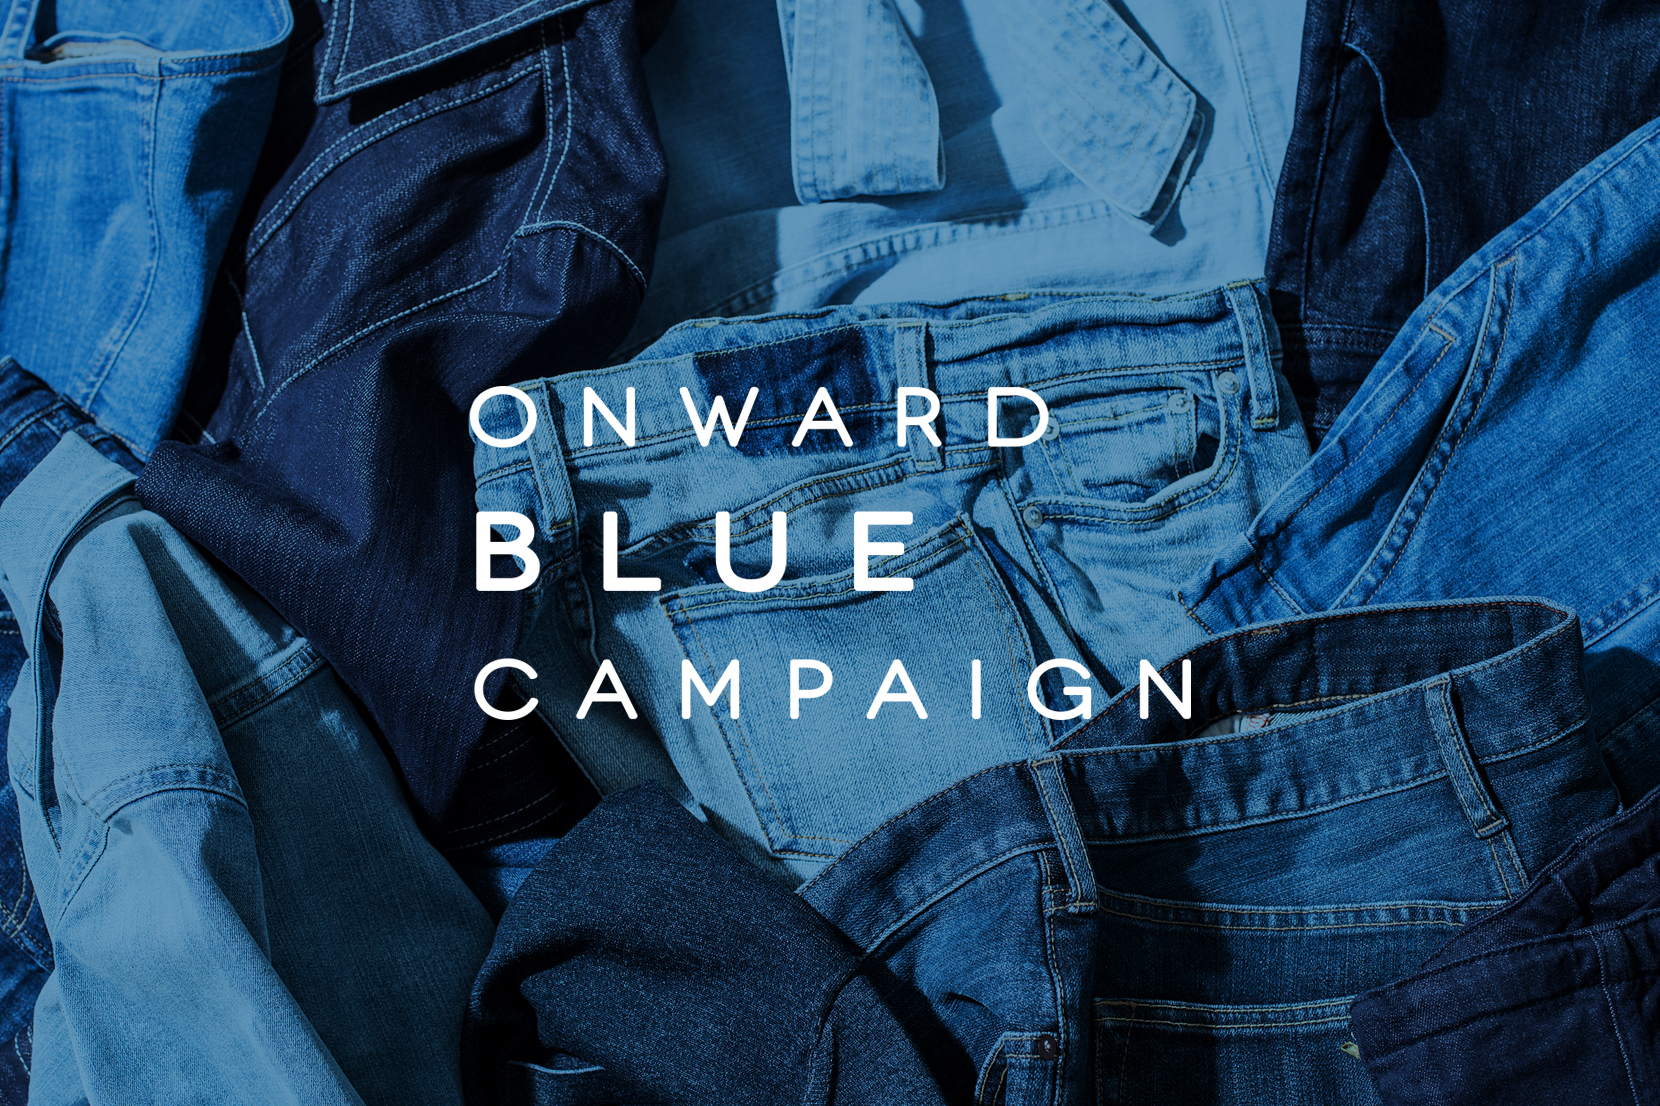 BLUE CAMPAIGN -ONWARD